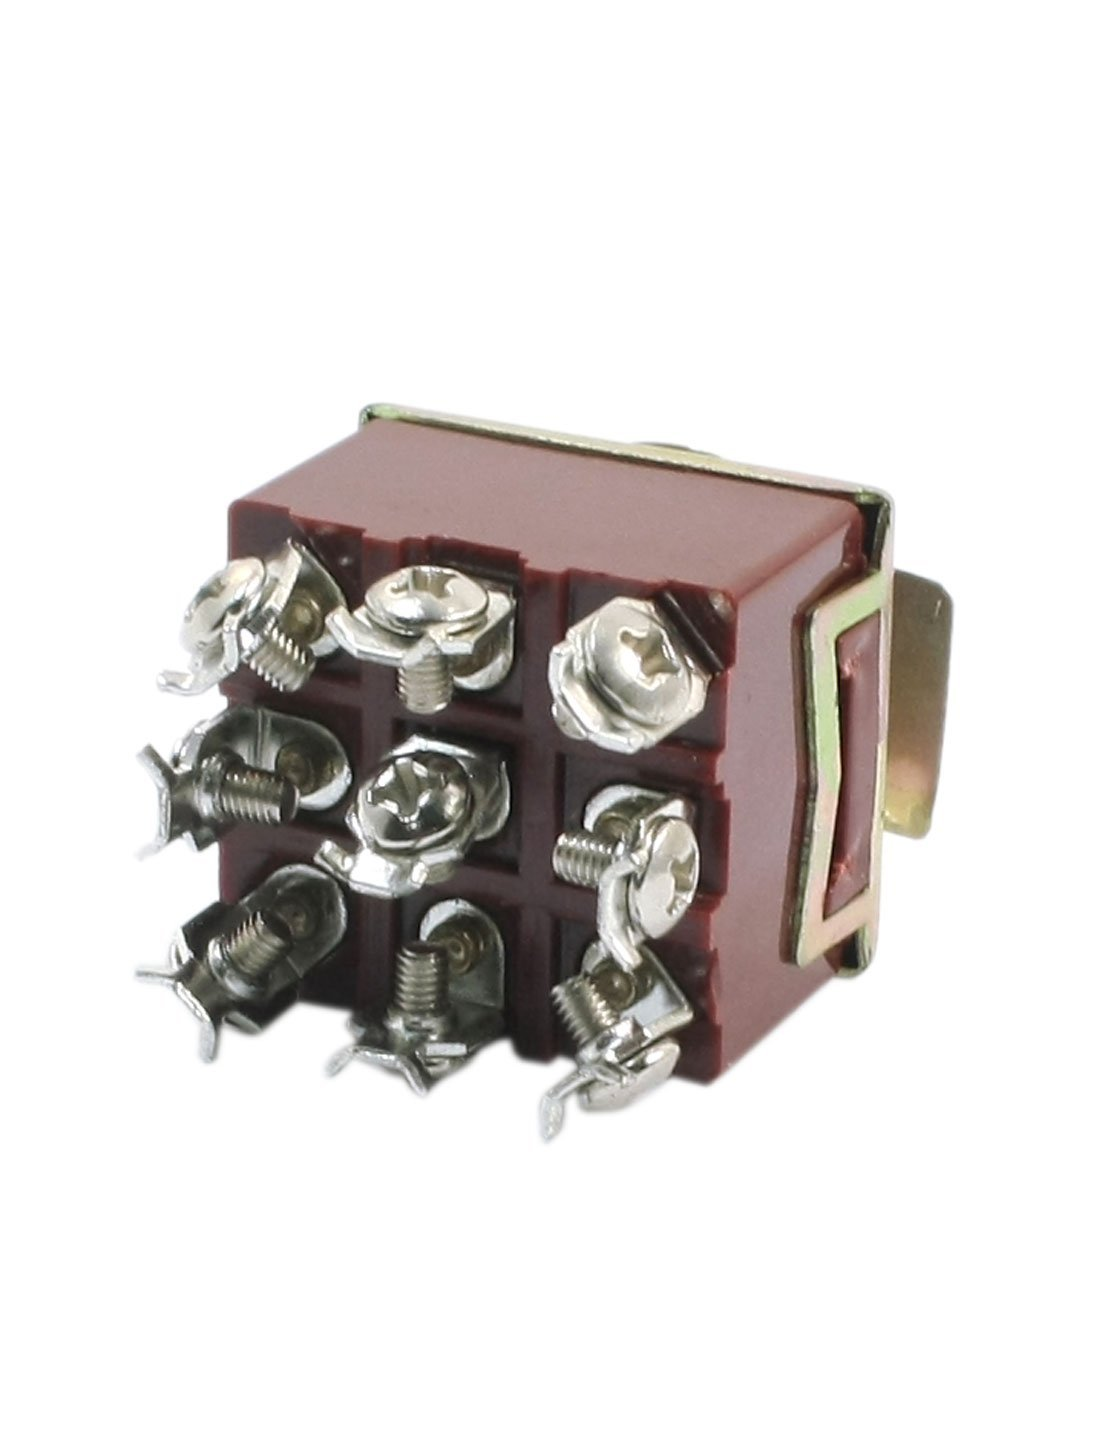 DealMux a14060600ux0721 3PDT 3 Position 9 Screw Terminals Toggle Switch AC380V 10A E-TEN303